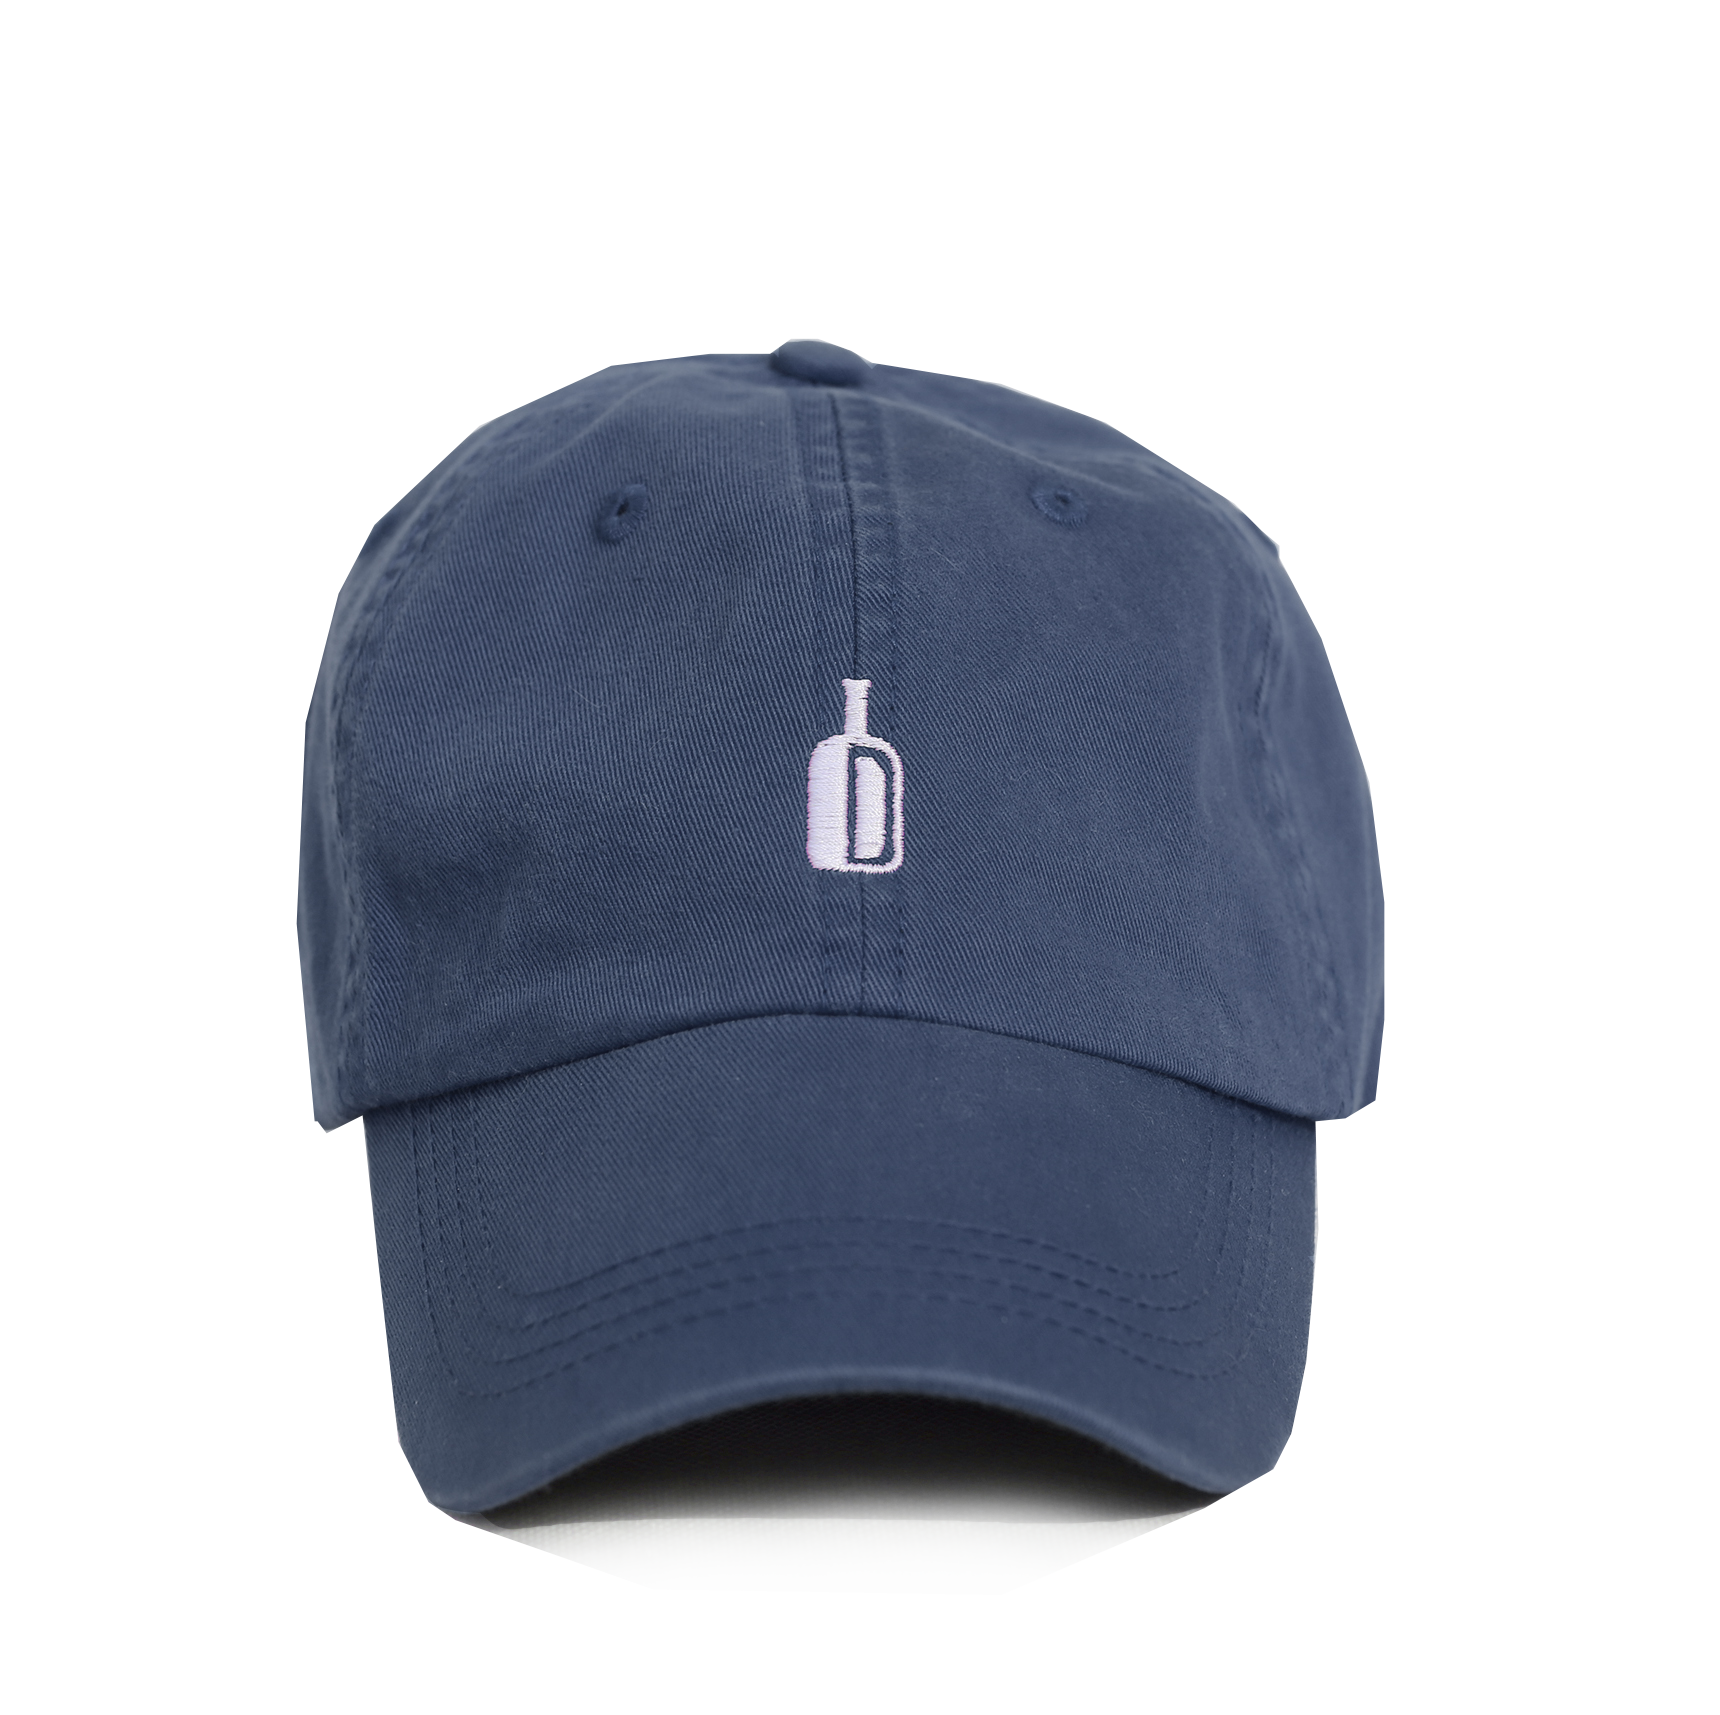 DIXIE RESERVE WHISKEY BOURBON HAT 90 PROOF NAVY